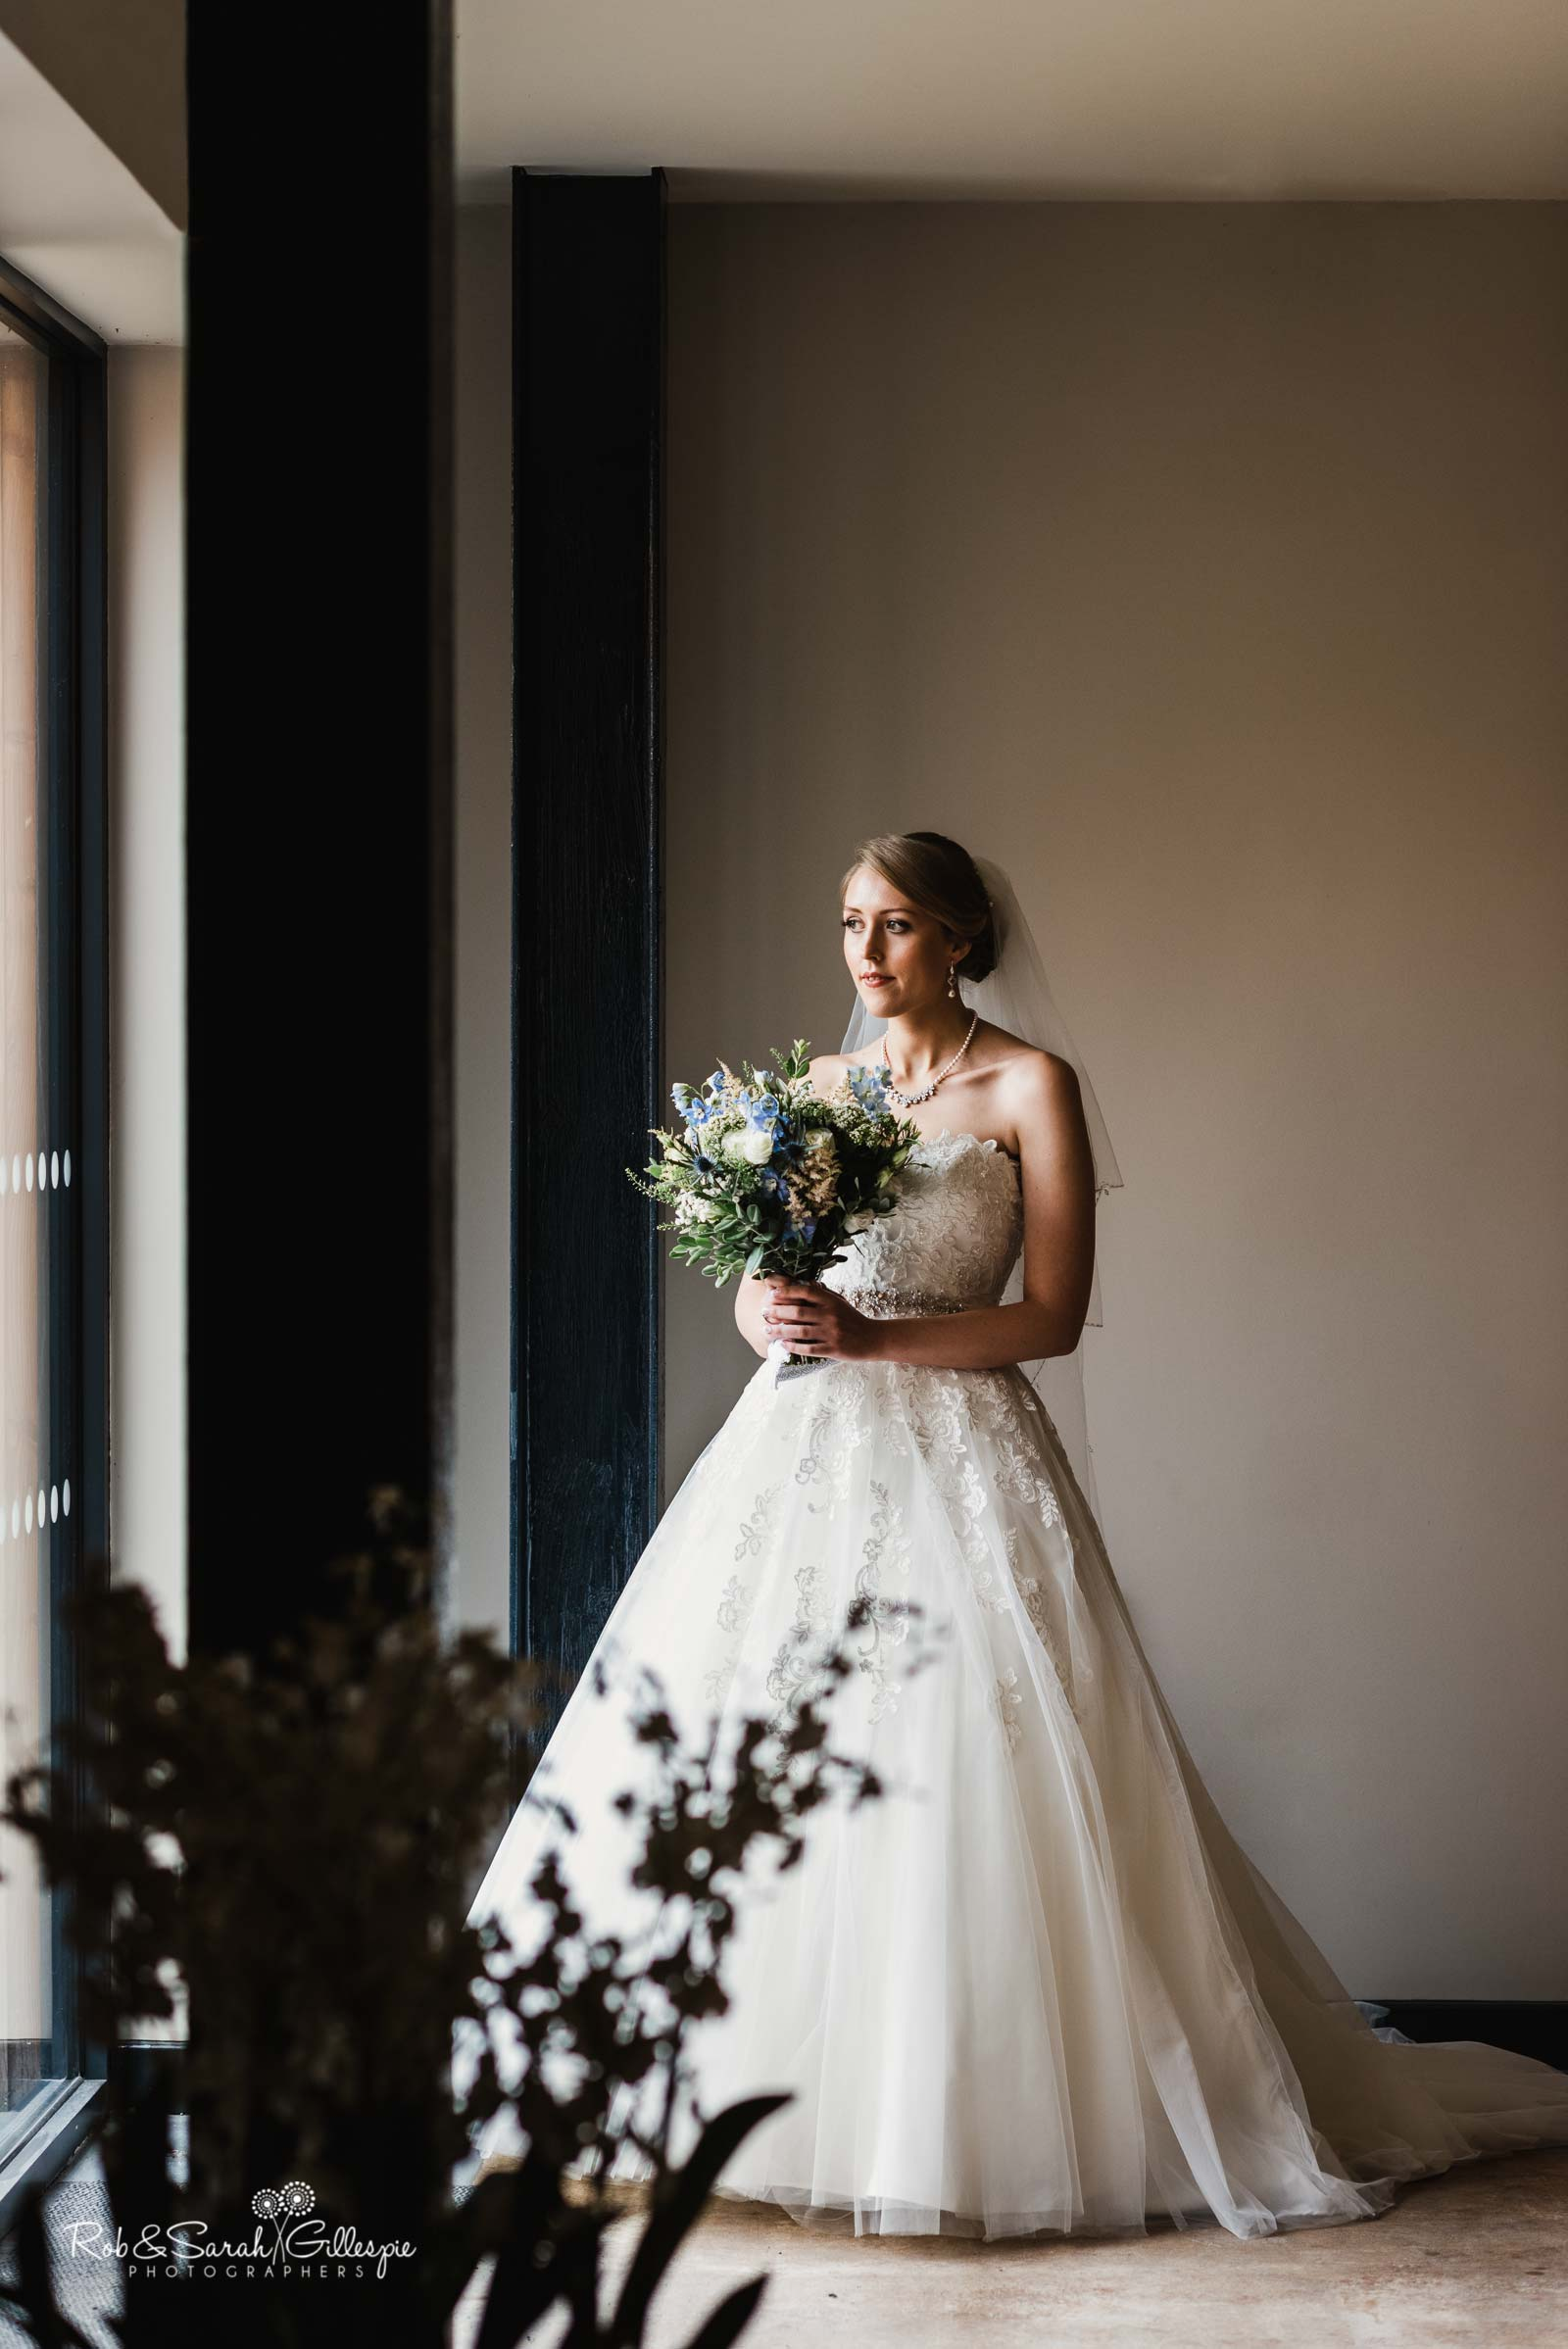 Stunning portrait of bride at The Mill Barns wedding venue